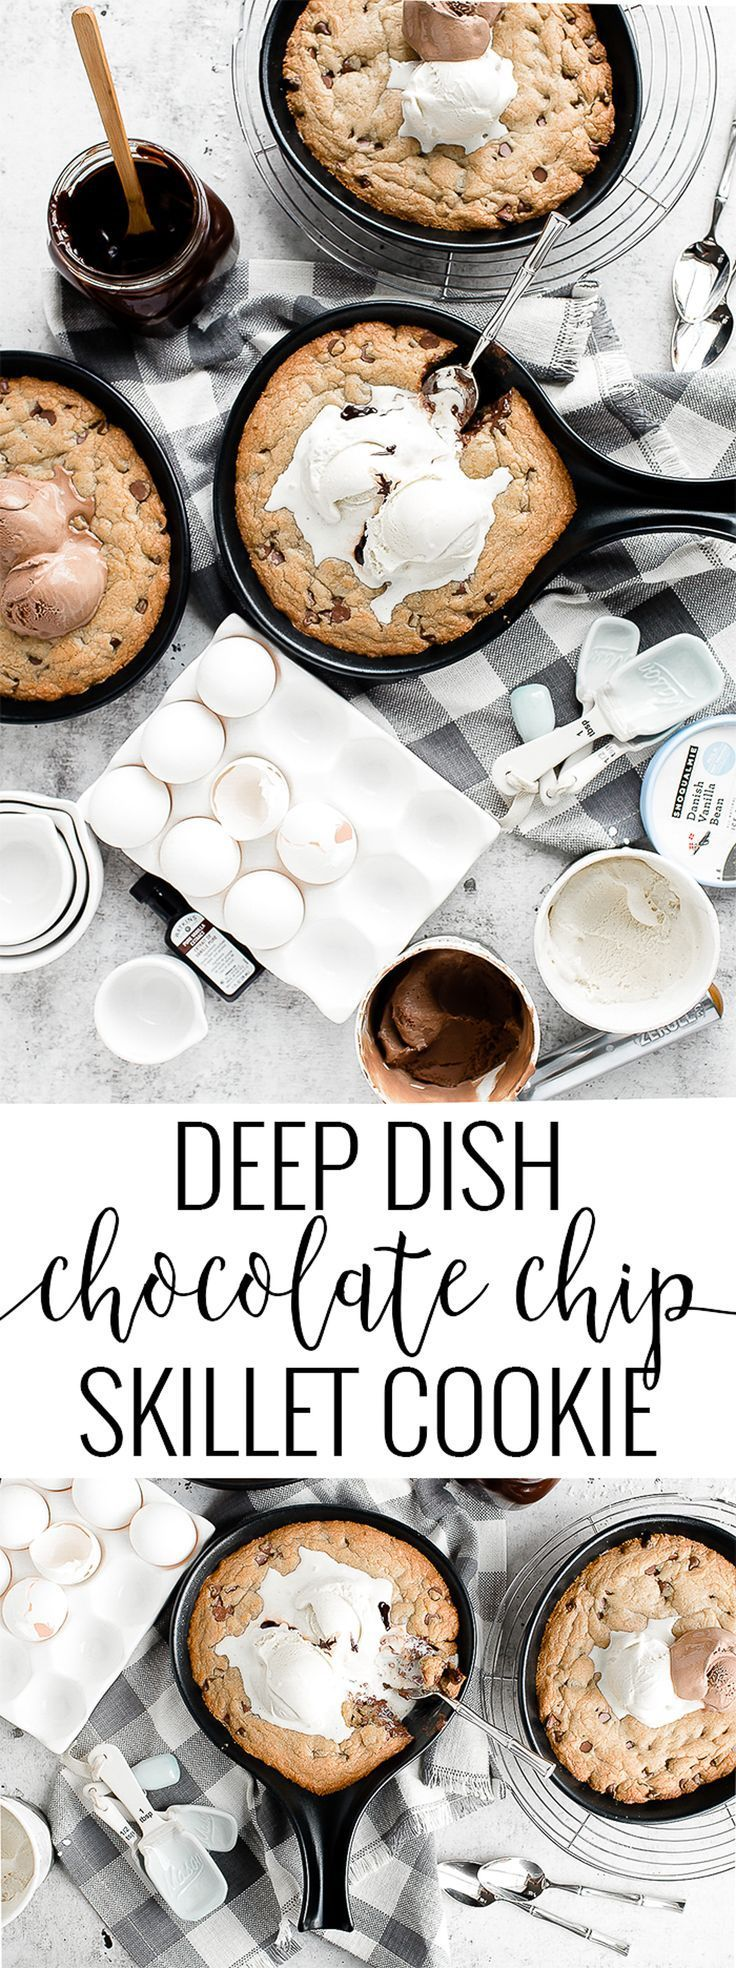 Deep Dish Chocolate Chip Skillet Cookie